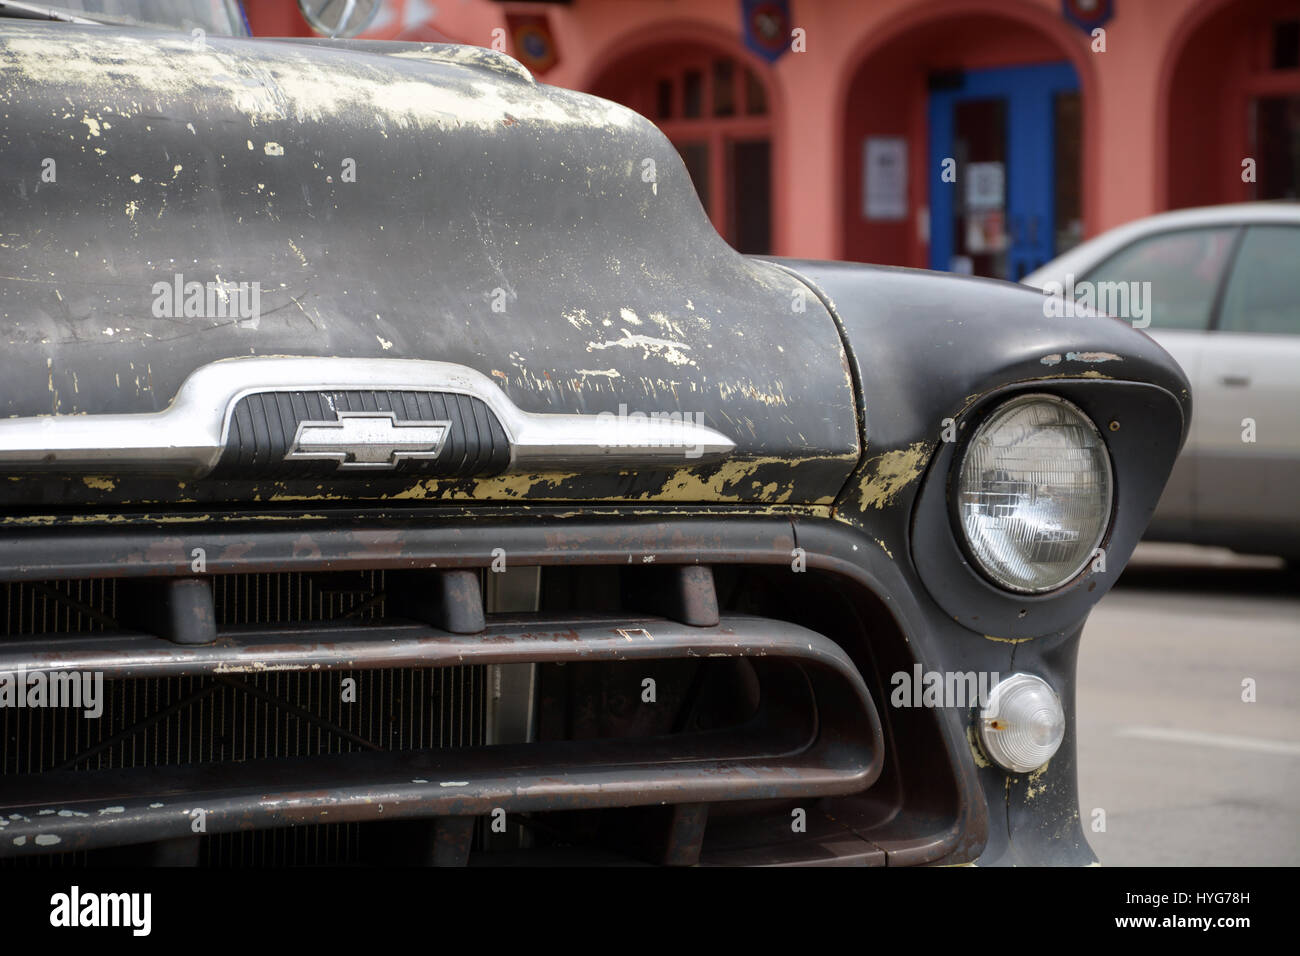 1957 Chevy Chevrolet Stock Photos Panel Van The Weathered Front End Of A Half Ton In Dallas Deep